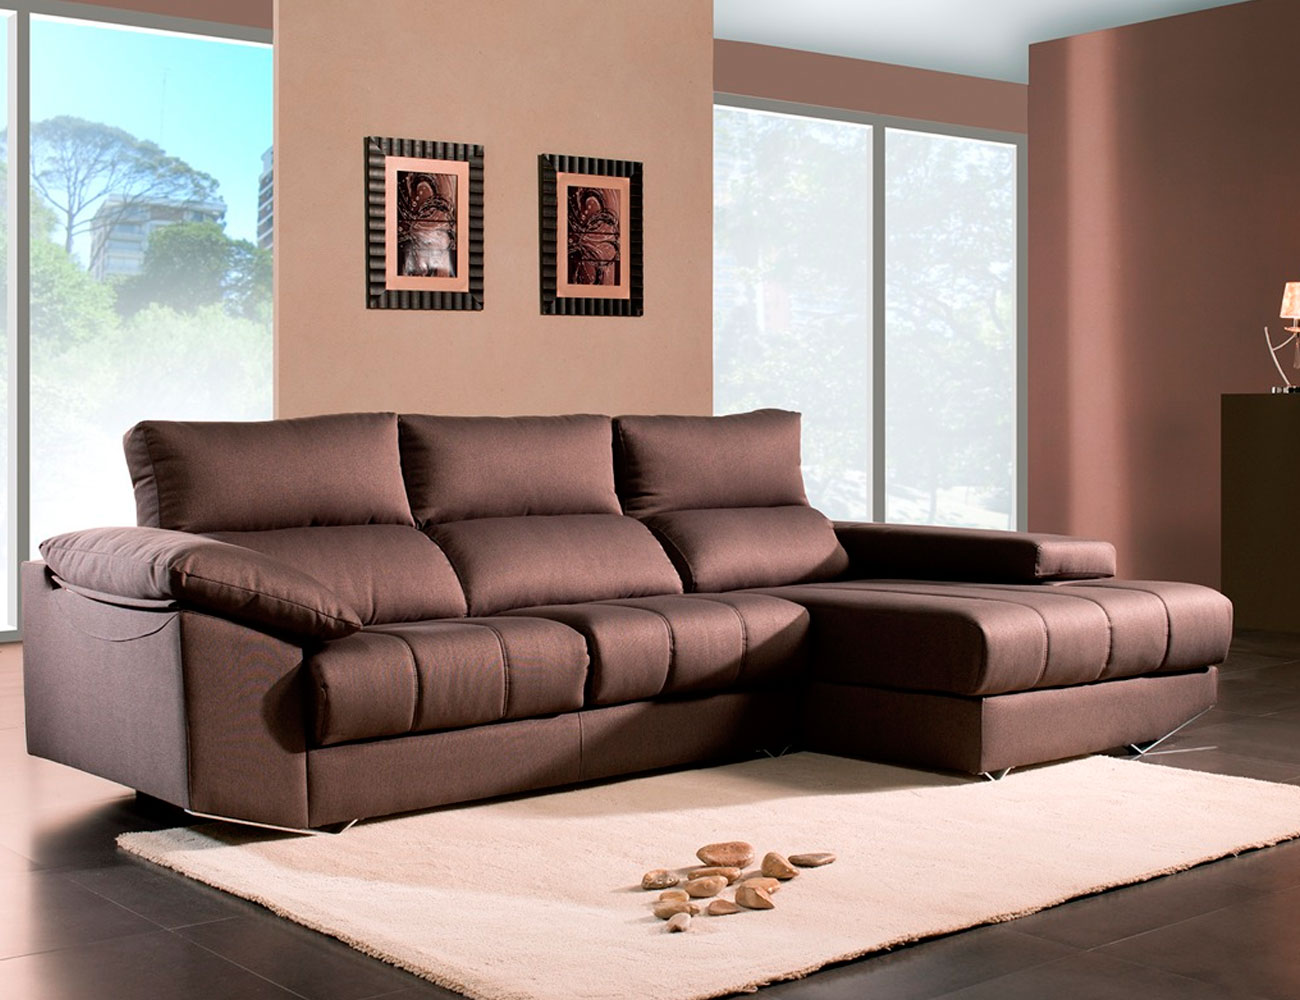 Sofa chaiselongue moderno brazo mecanico